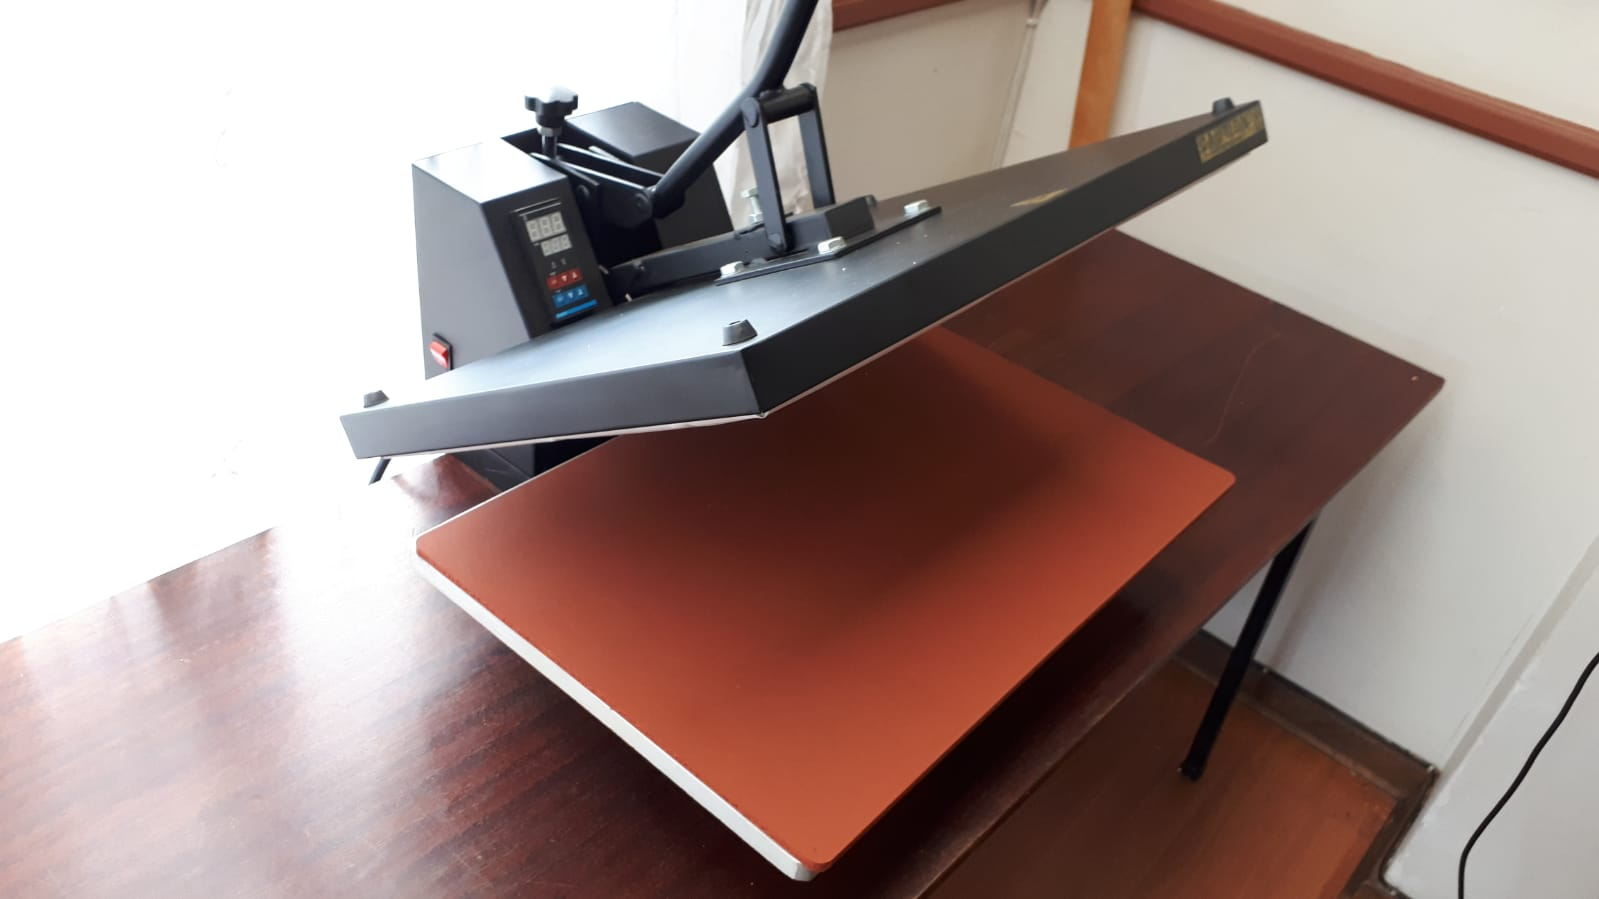 Vinyl cutter, sublimation printer and heatpress combo for sale